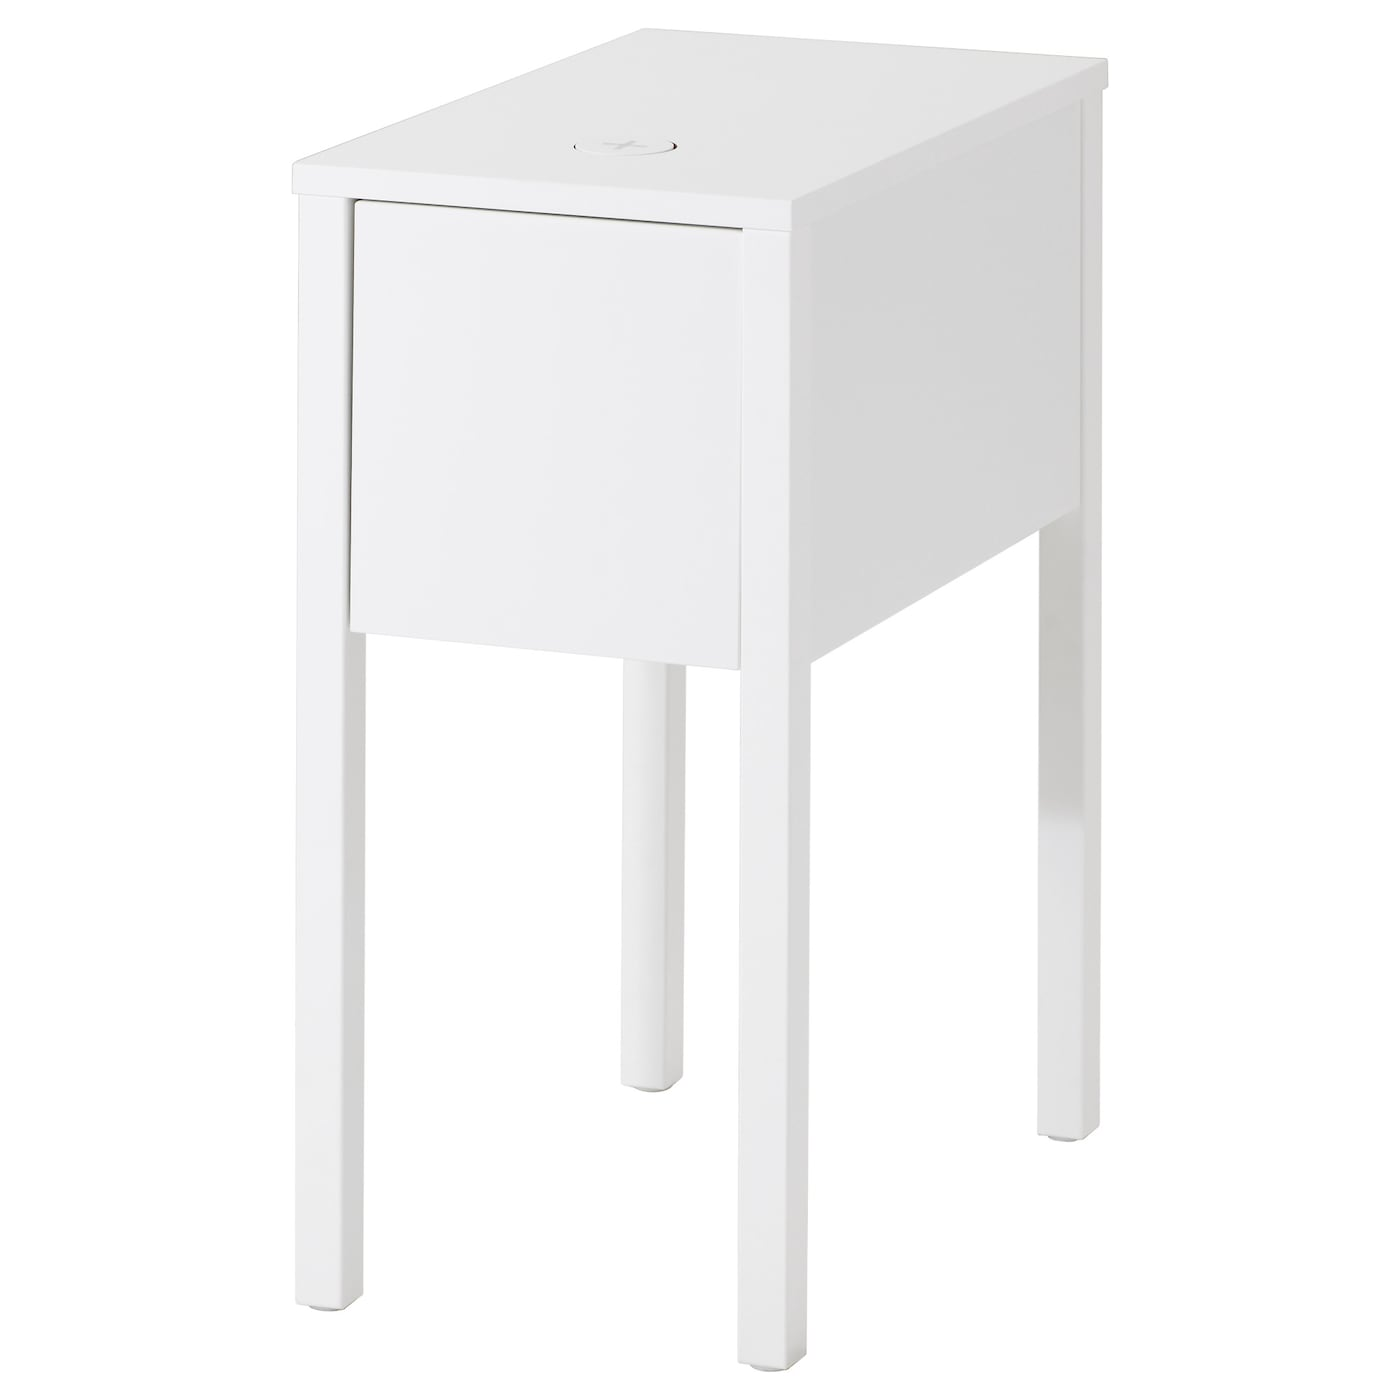 IKEA NORDLI bedside table with hole for charger